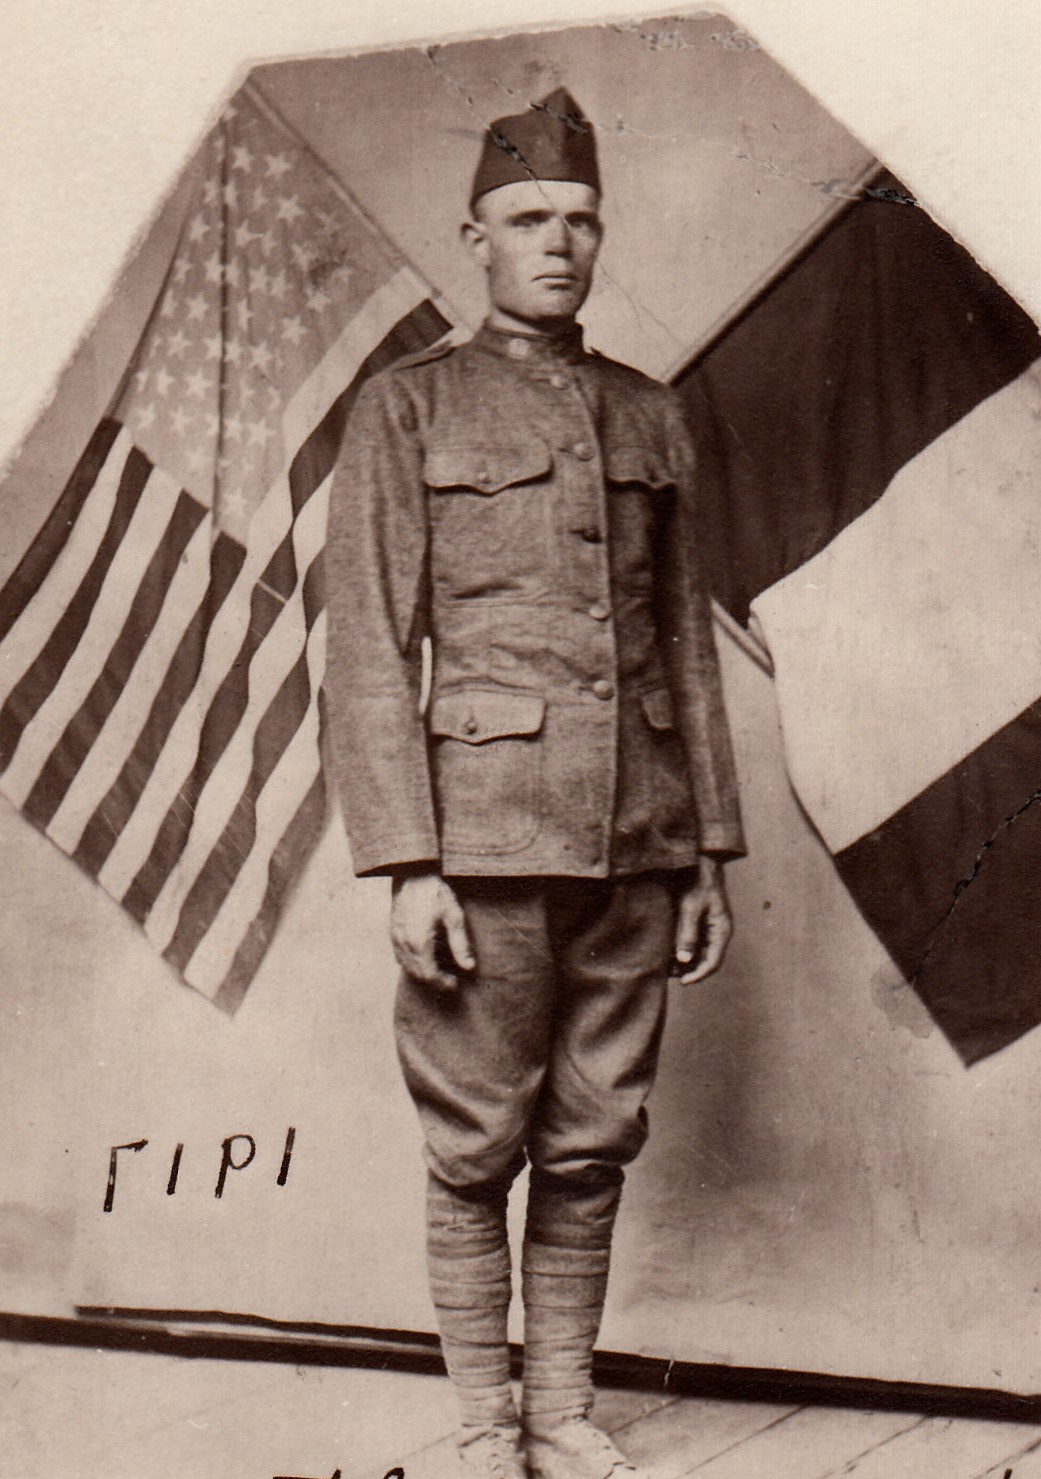 Don Allen Lightner in his military uniform